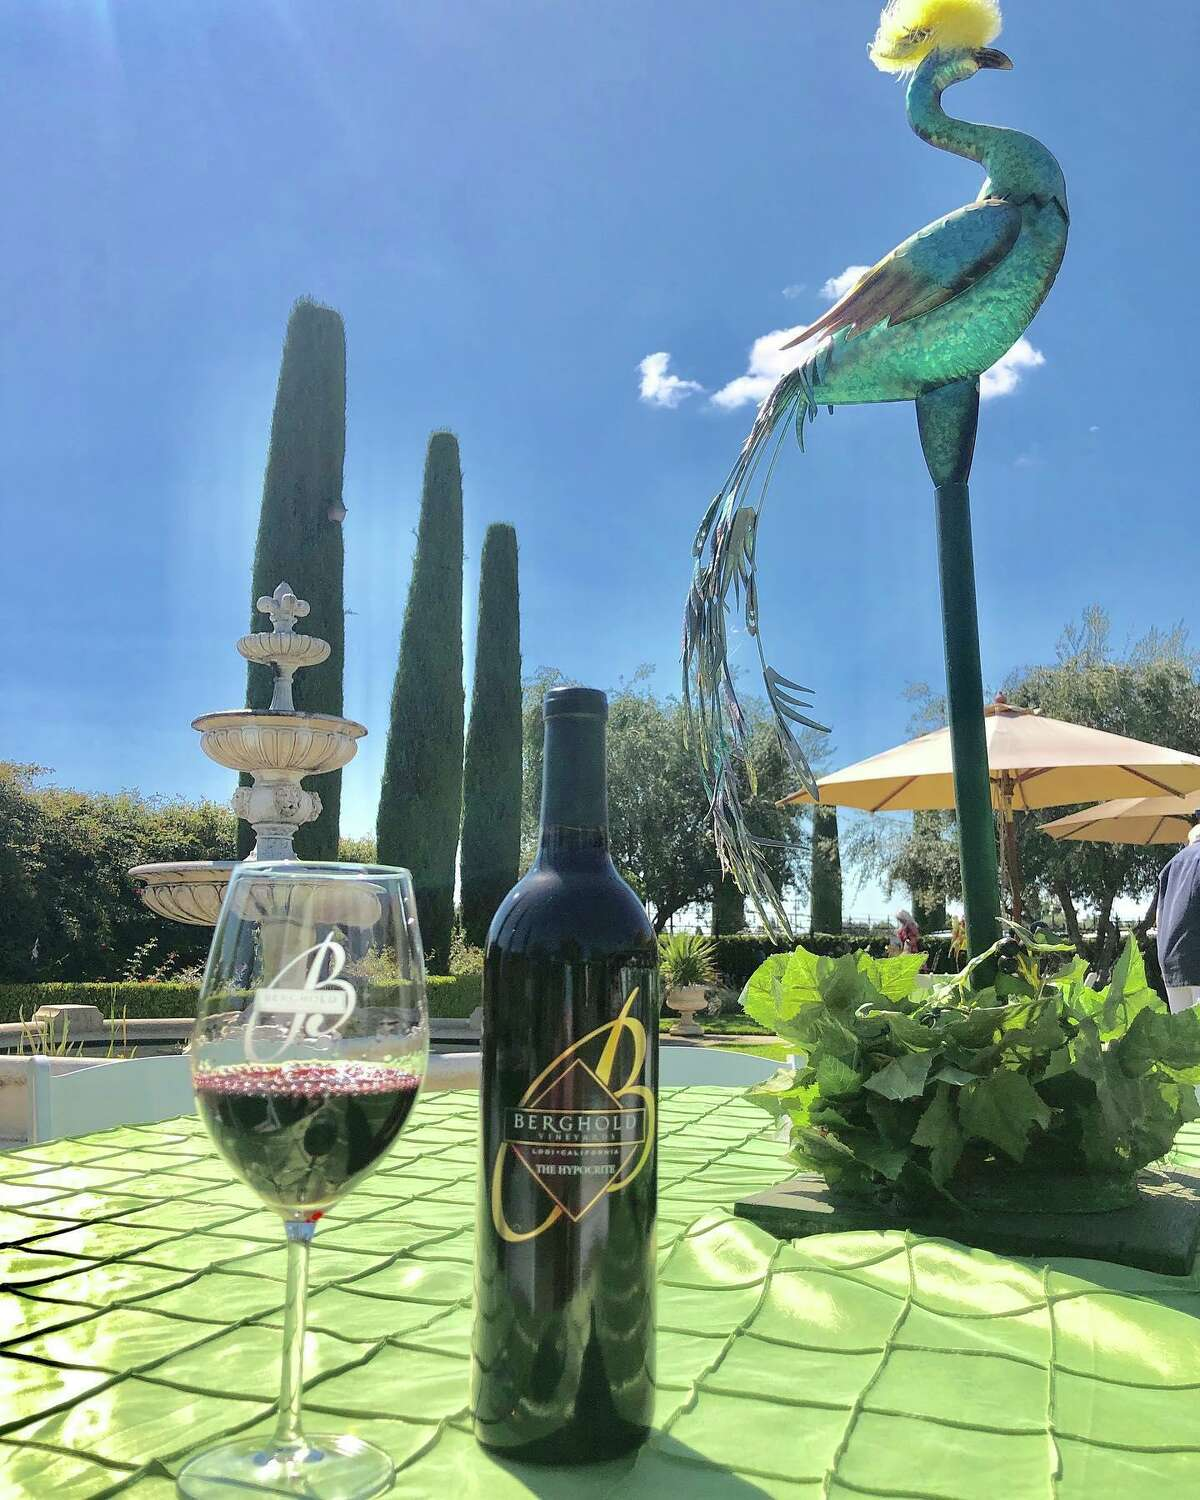 Tastings for groups of up to six are available in the dog-friendly courtyards at Berghold Vineyards.